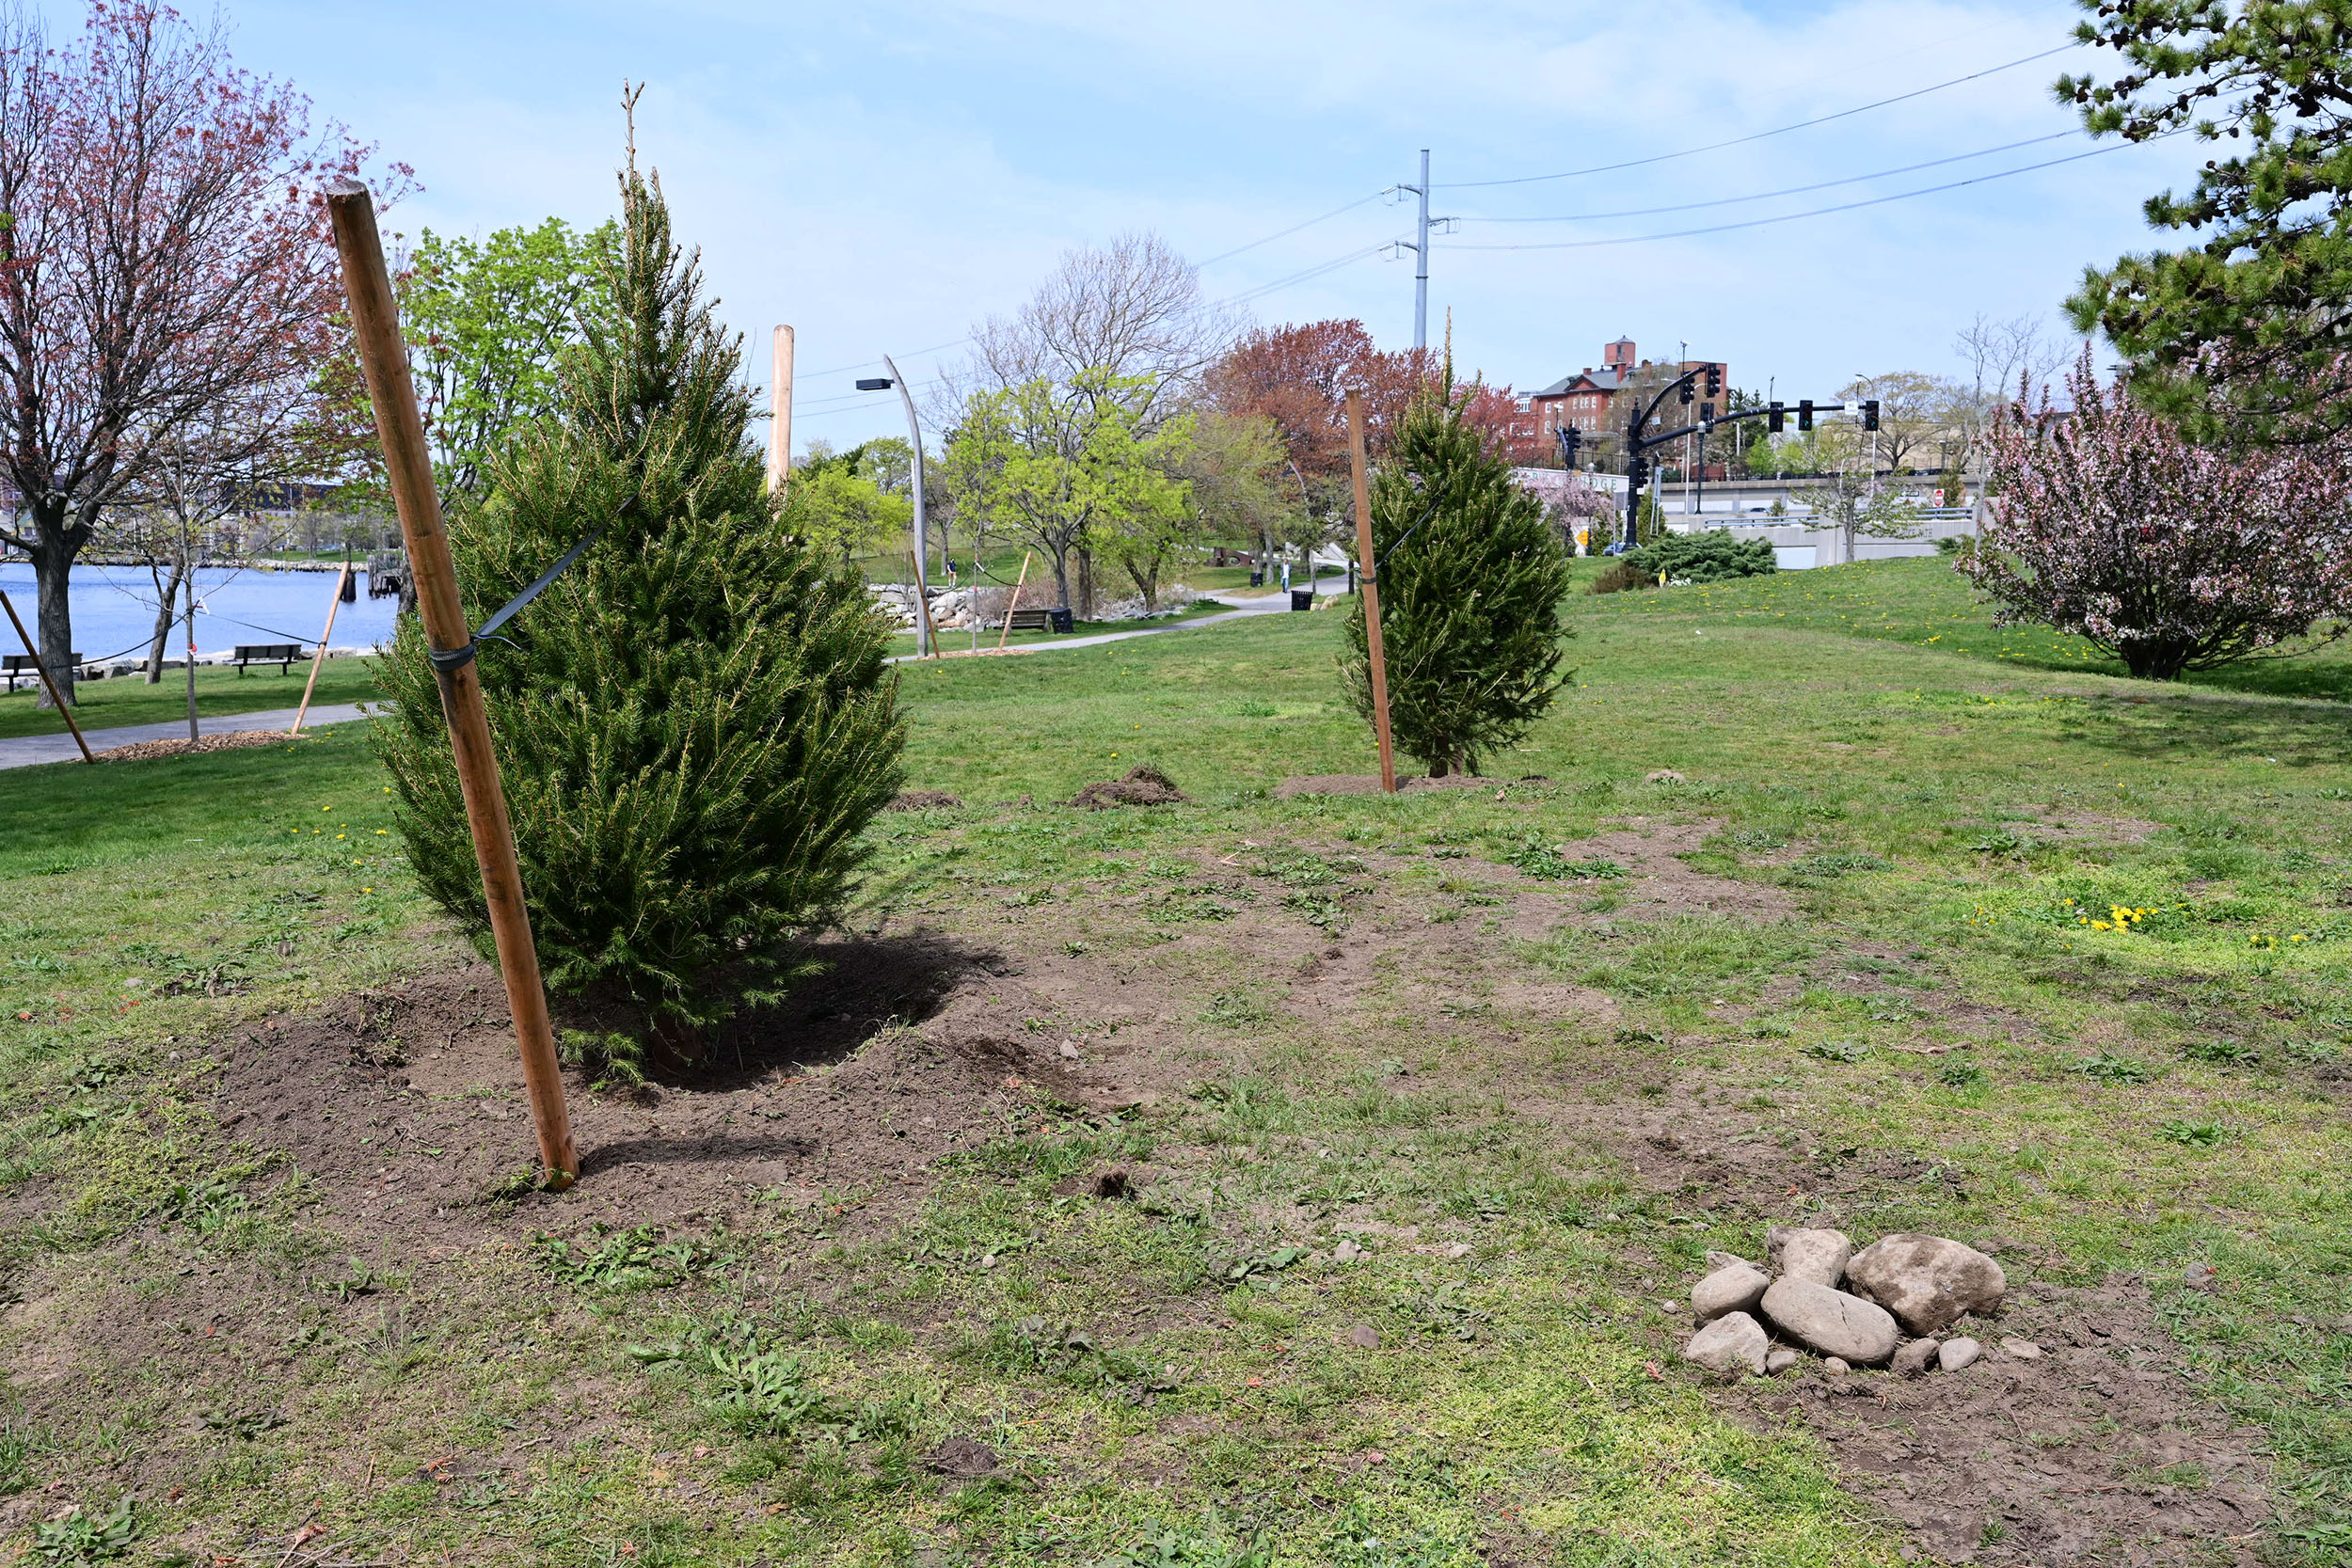 New trees planted in the park !